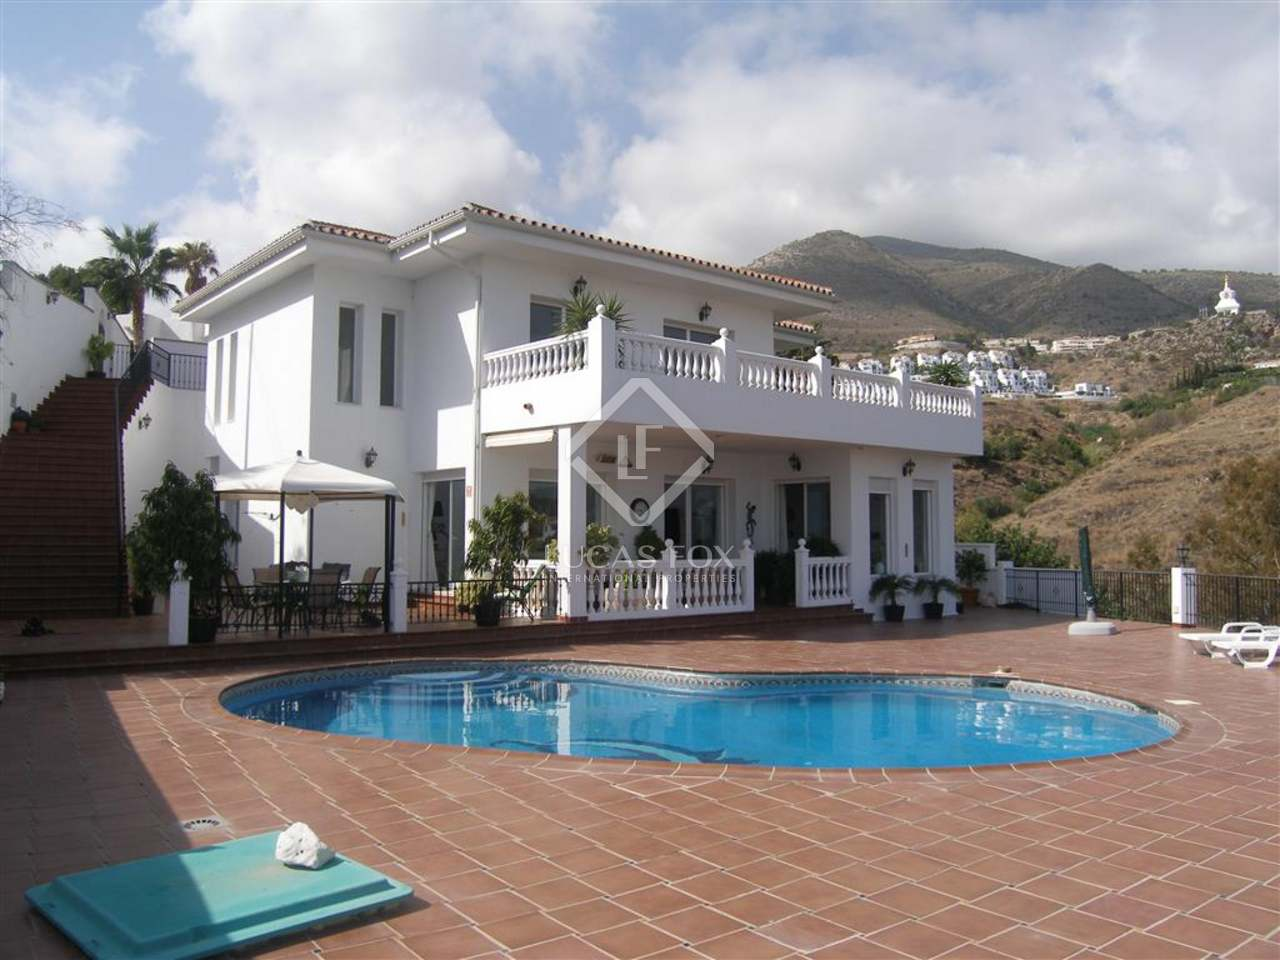 235m Villa With A Garden And Pool For Sale In Benalmadena